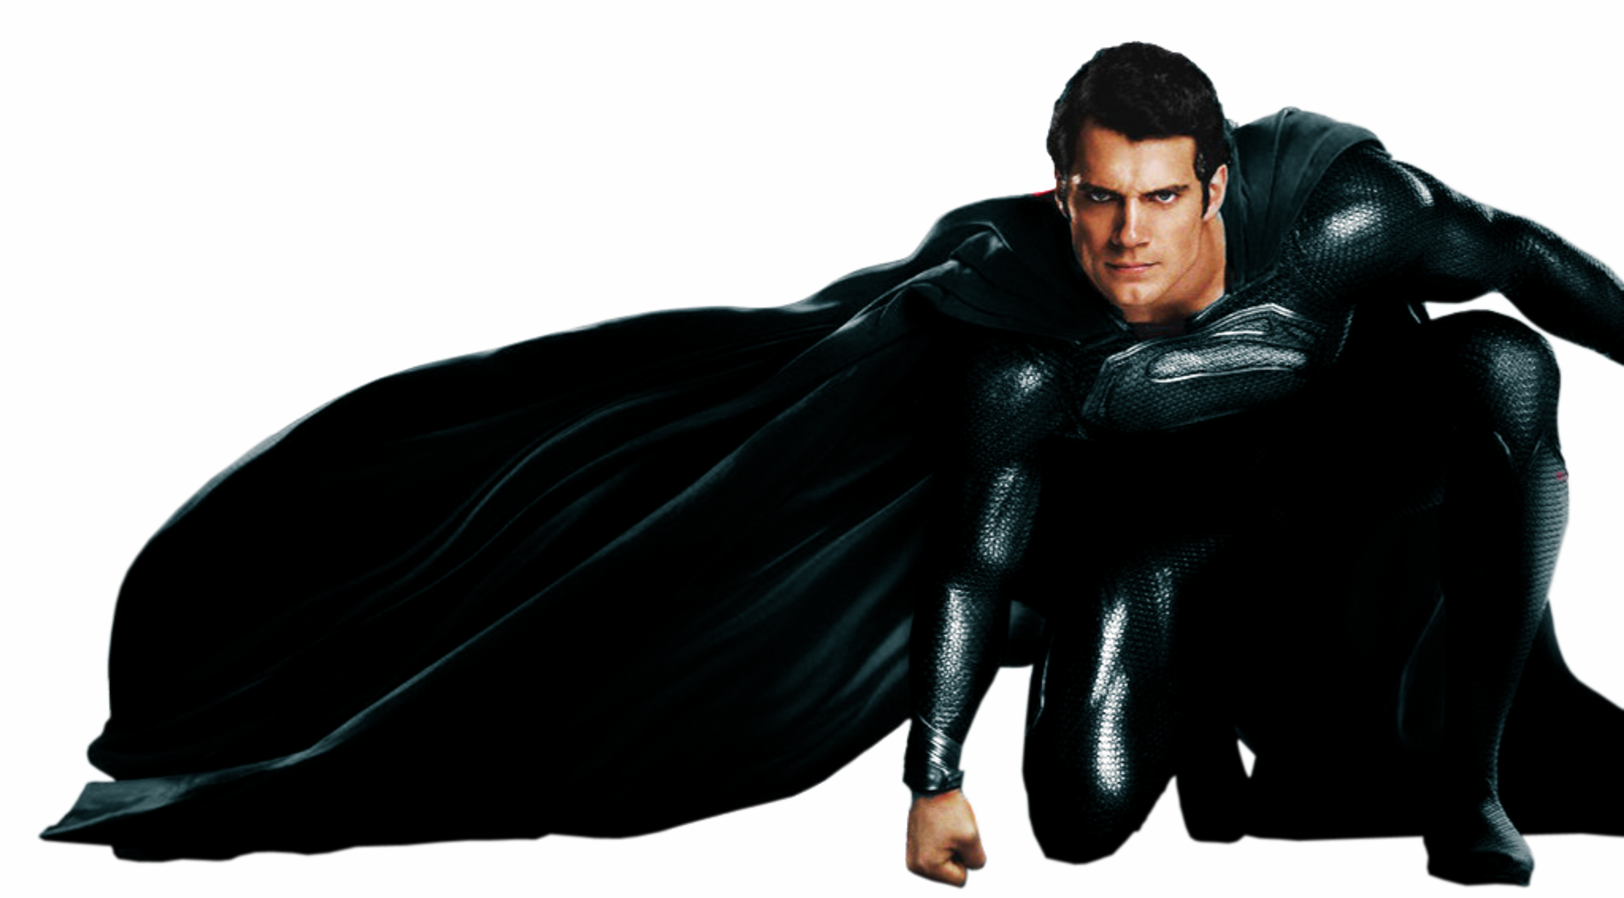 Henry cavill superman png. Posts a glimpse of